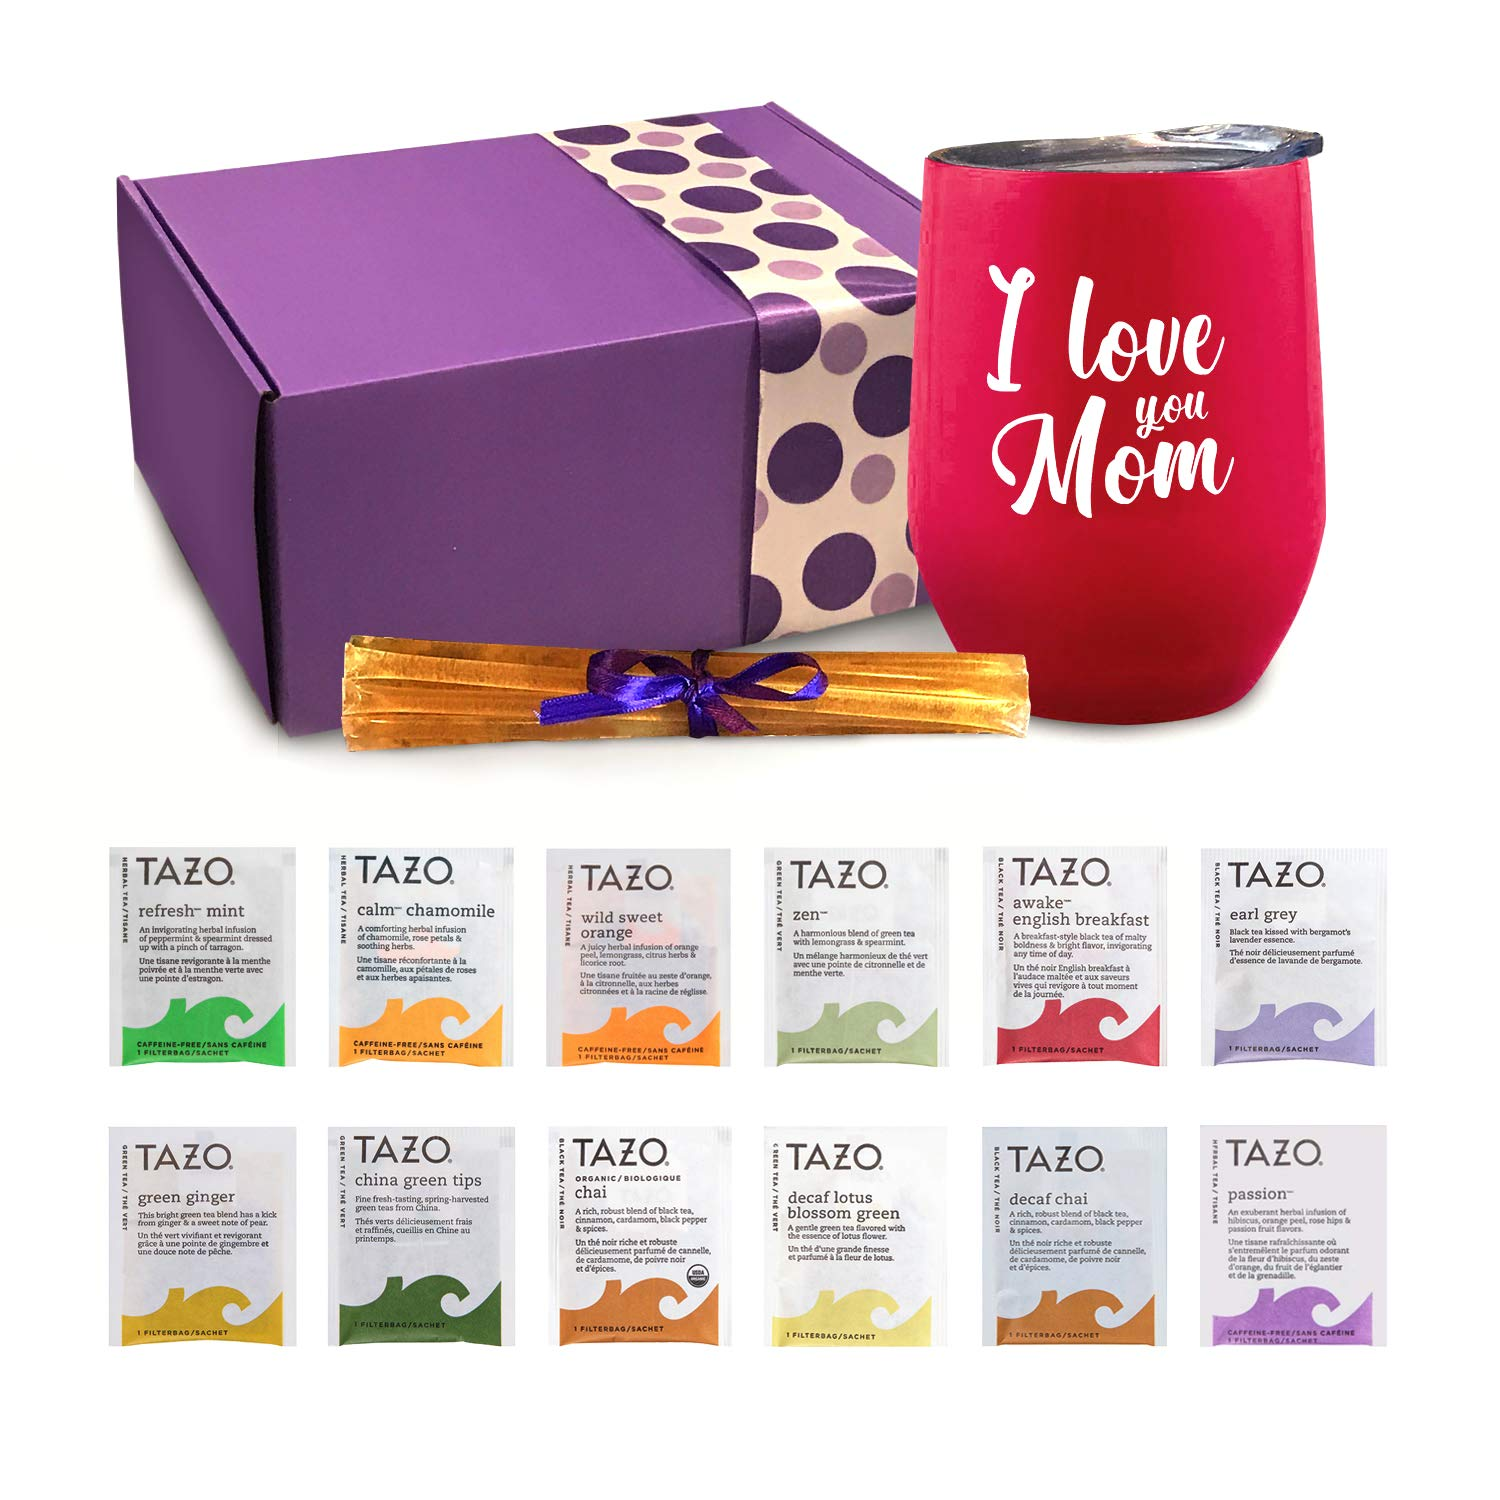 Mom Gifts - Tea Set Gifts For Mom Includes I Love You Mom Insulated Tea Cup 12 Amazing Teas & All Natural Honey   Mom Birthday Gifts or Mothers Day Gifts Presented in Beautiful Gift Box by the art of Gift Giving